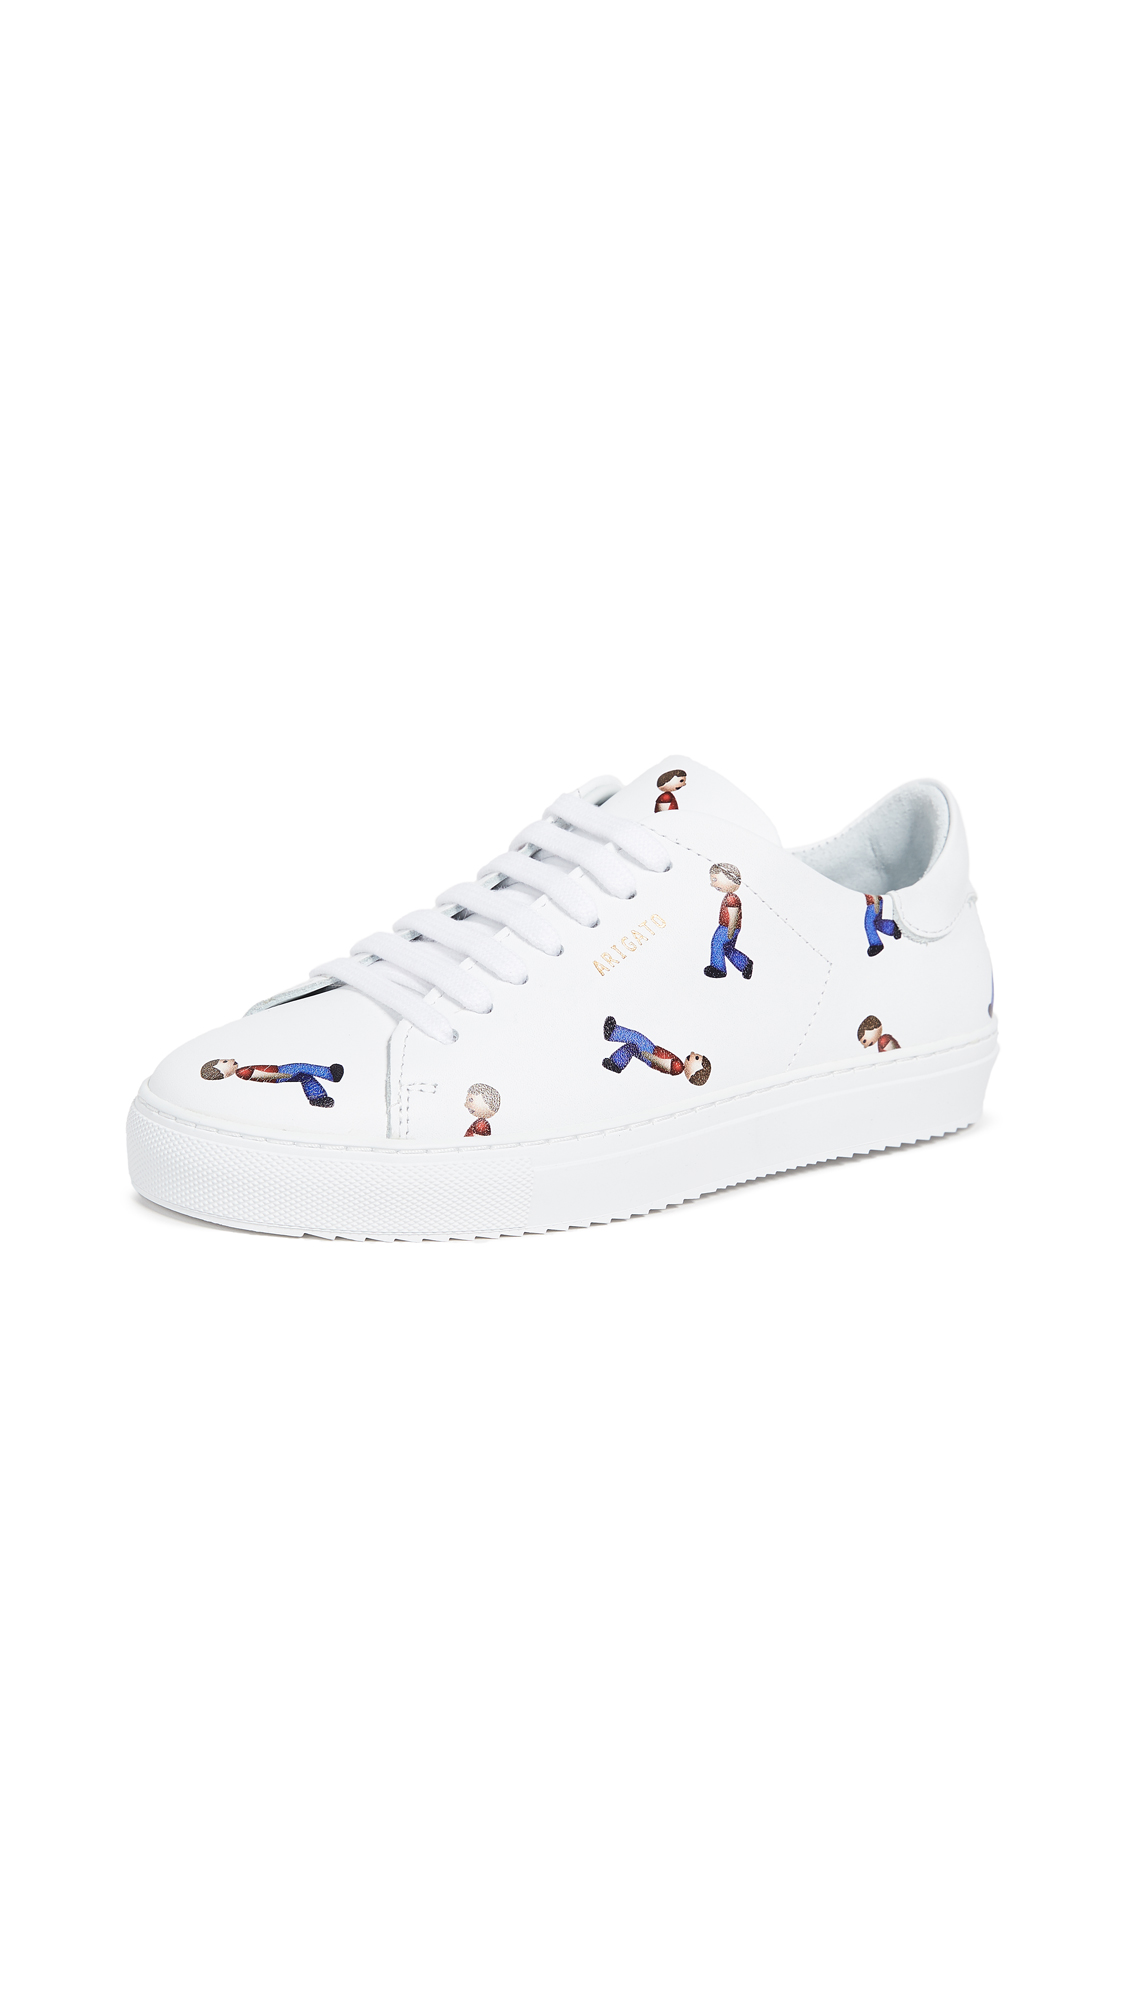 Axel Arigato Clean 90 Sneakers - White